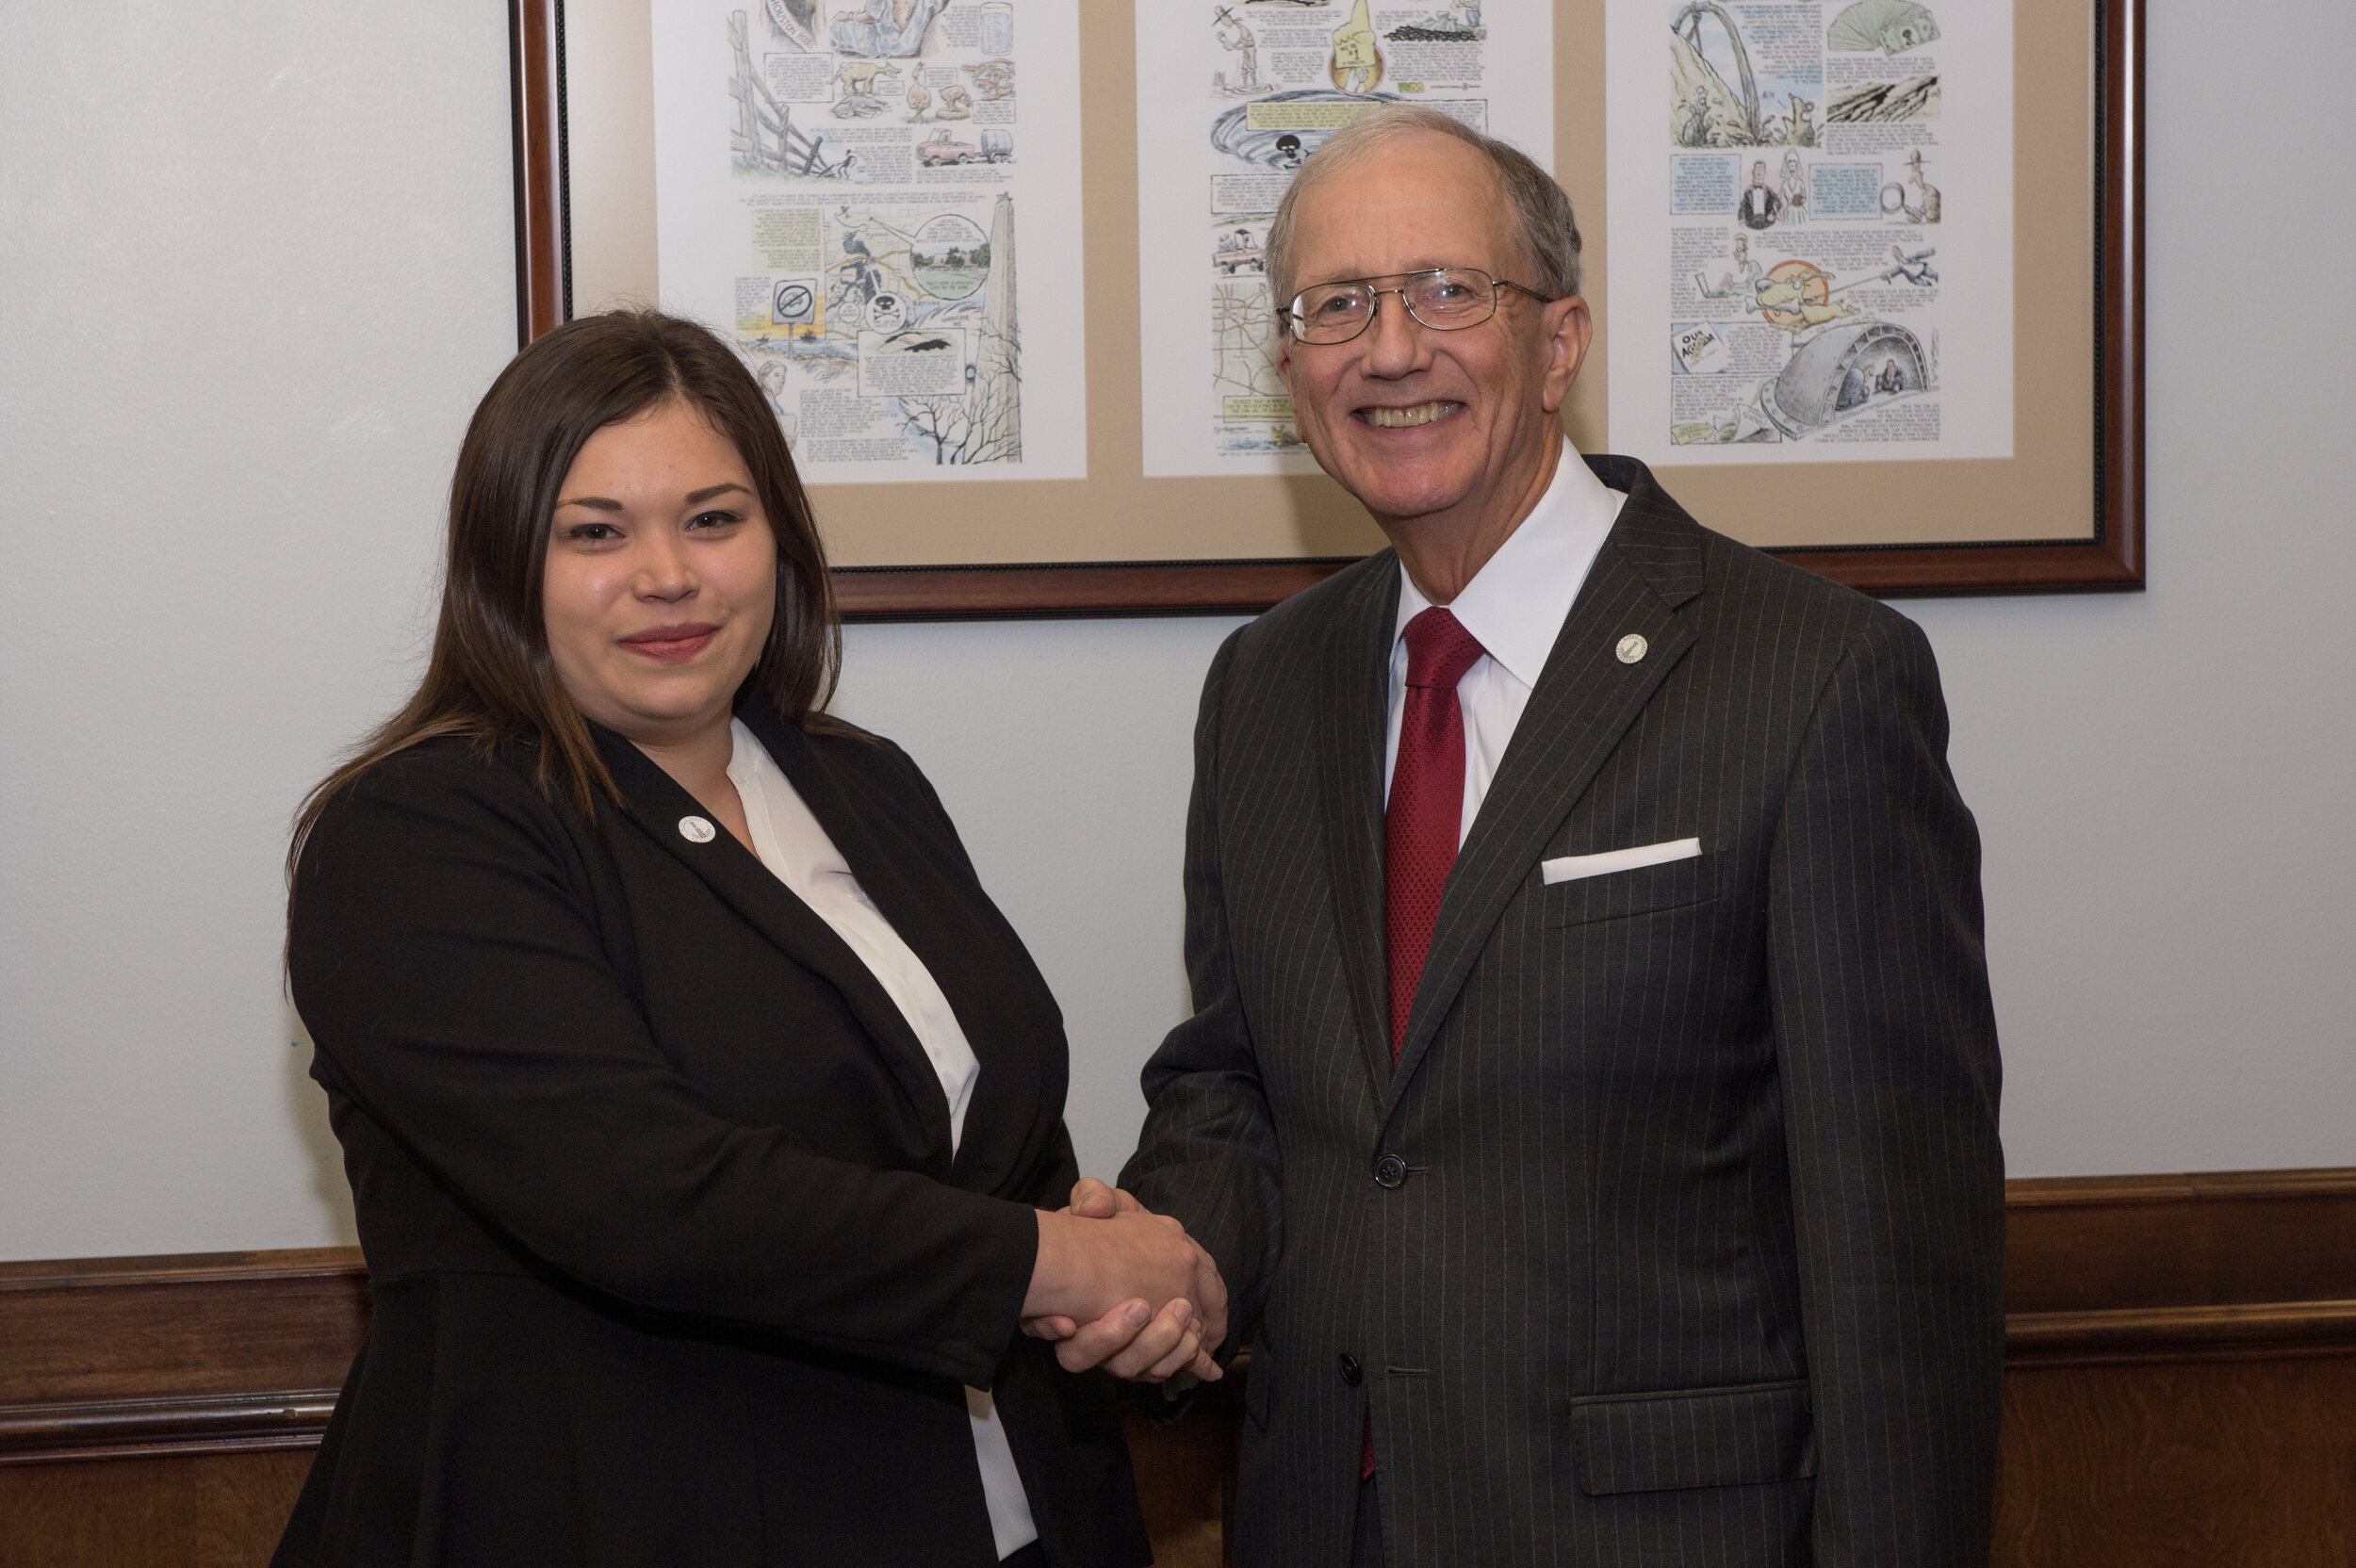 Assistant County Attorney Serenity Trevino with Harris County Attorney Vince Ryan after her swearing-in ceremony, Sept. 11.